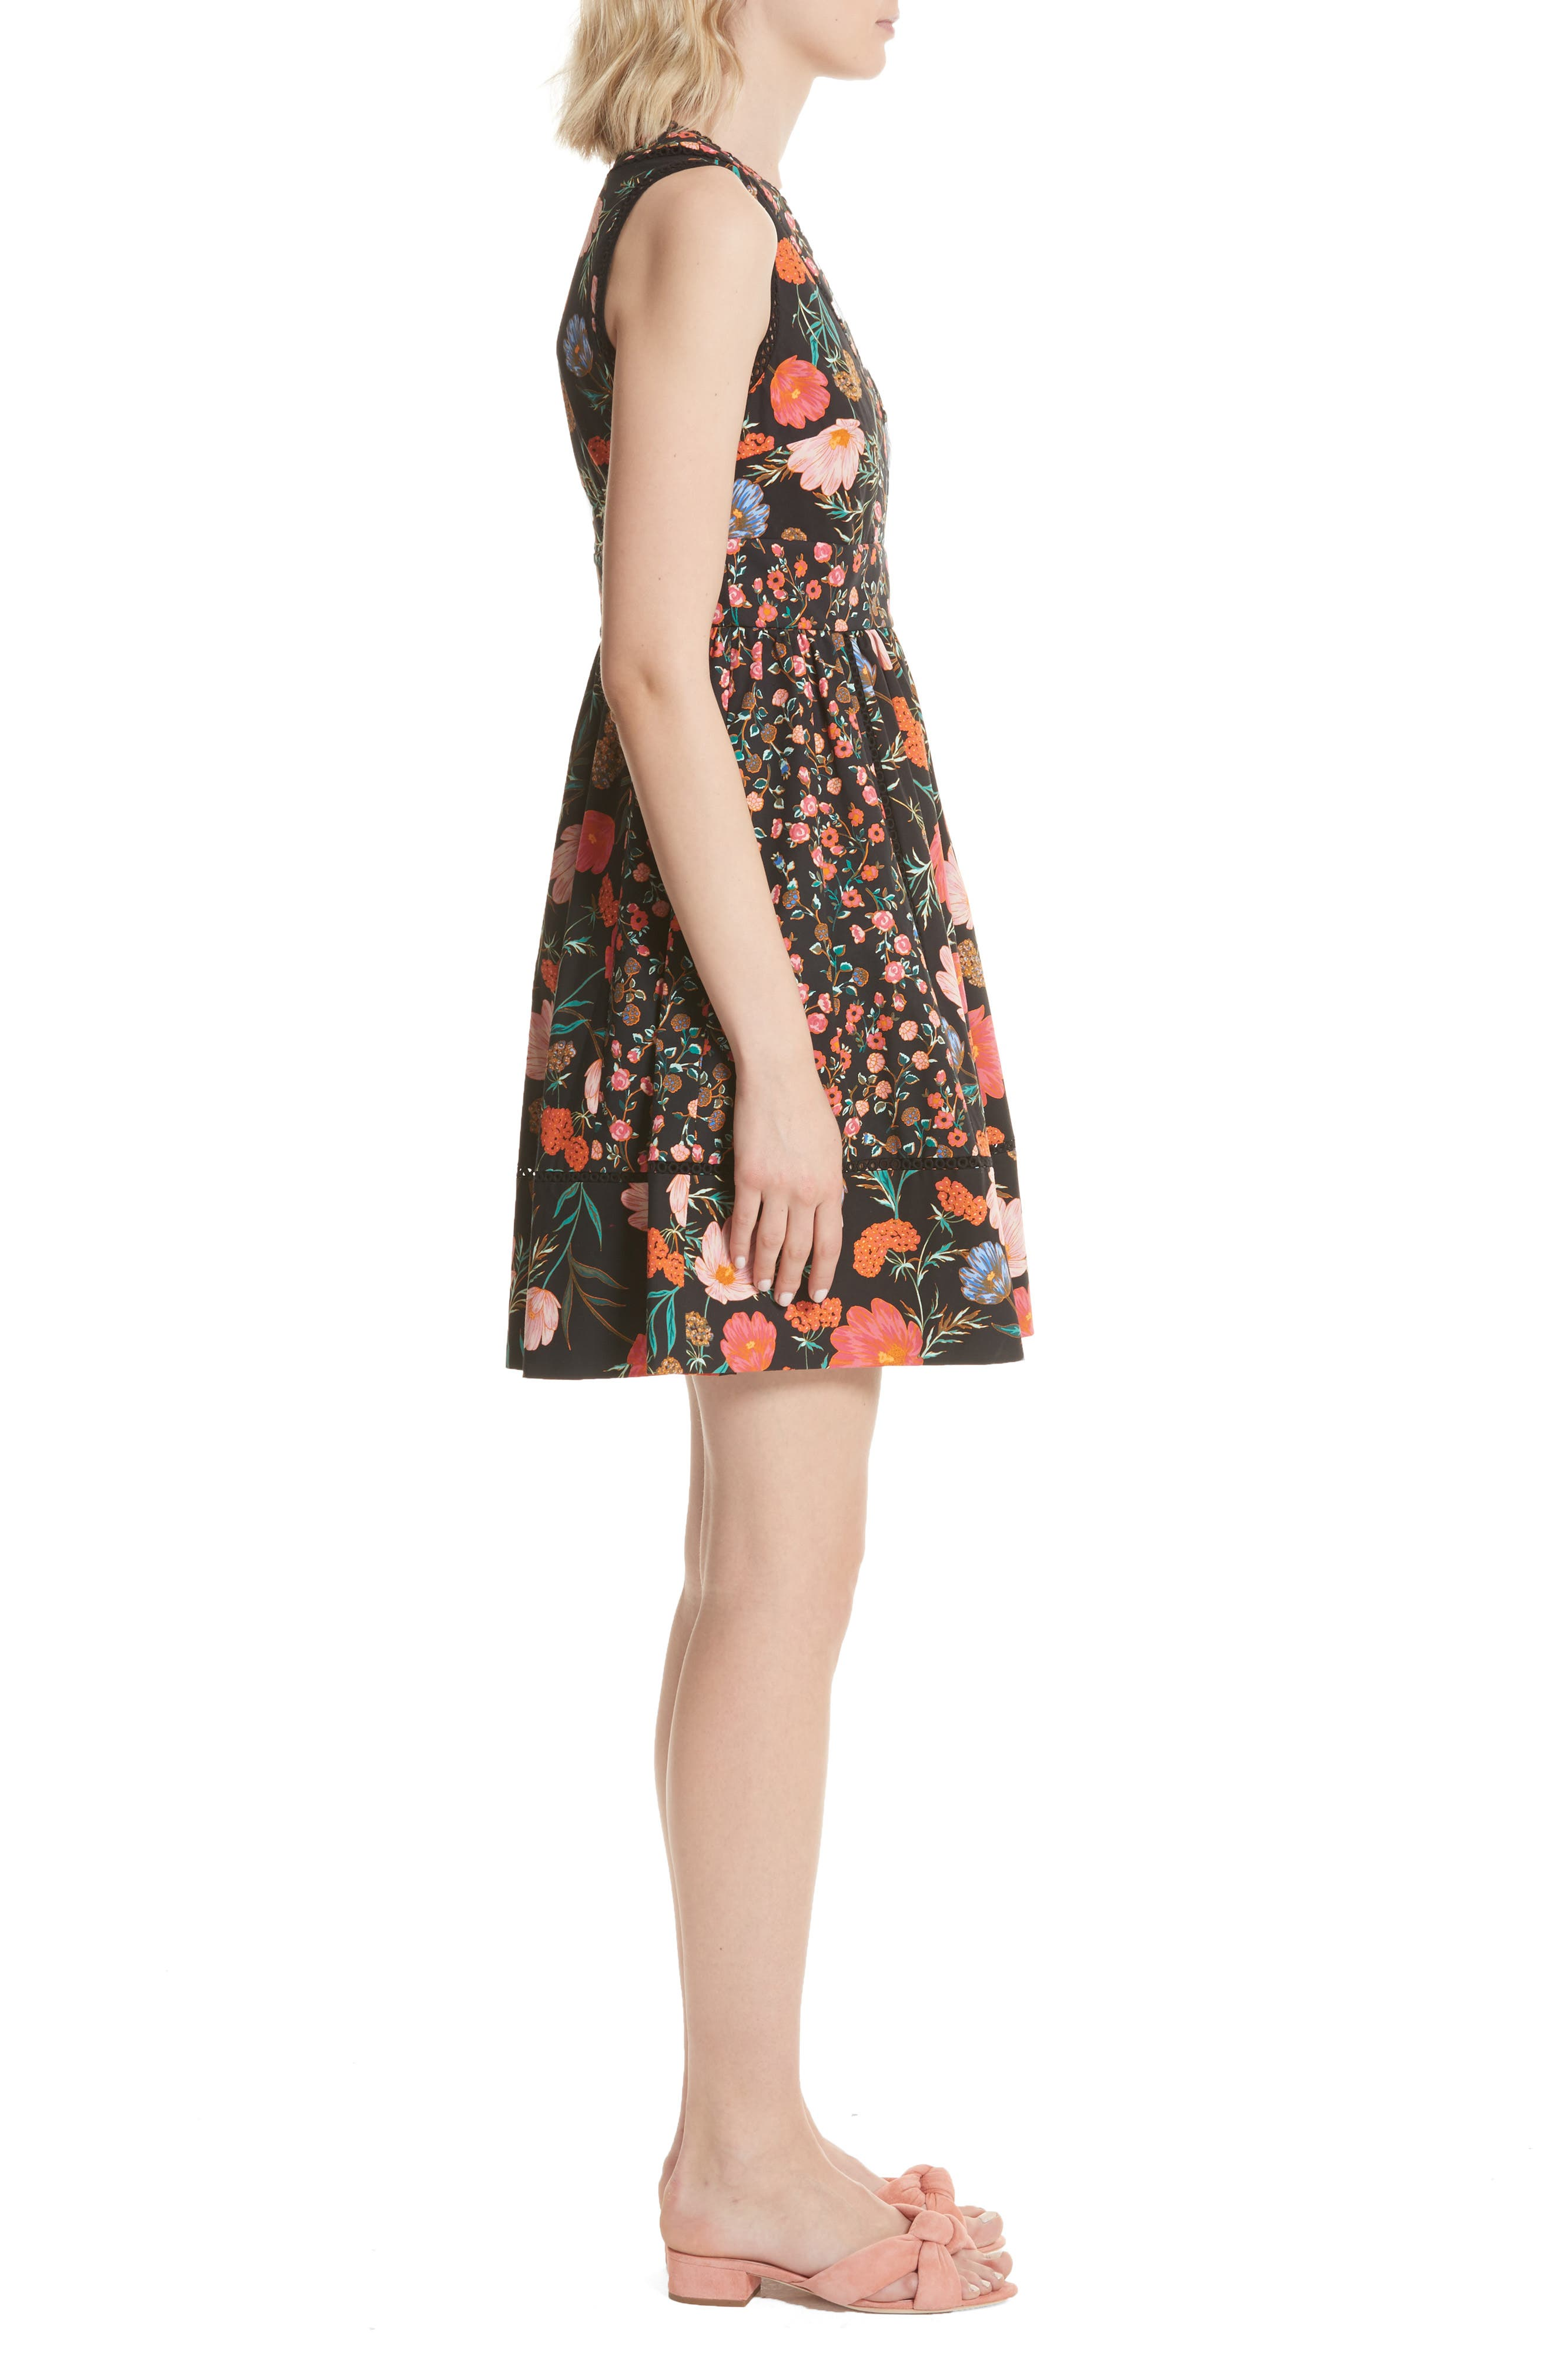 blossom sleeveless fit & flare dress,                             Alternate thumbnail 3, color,                             001